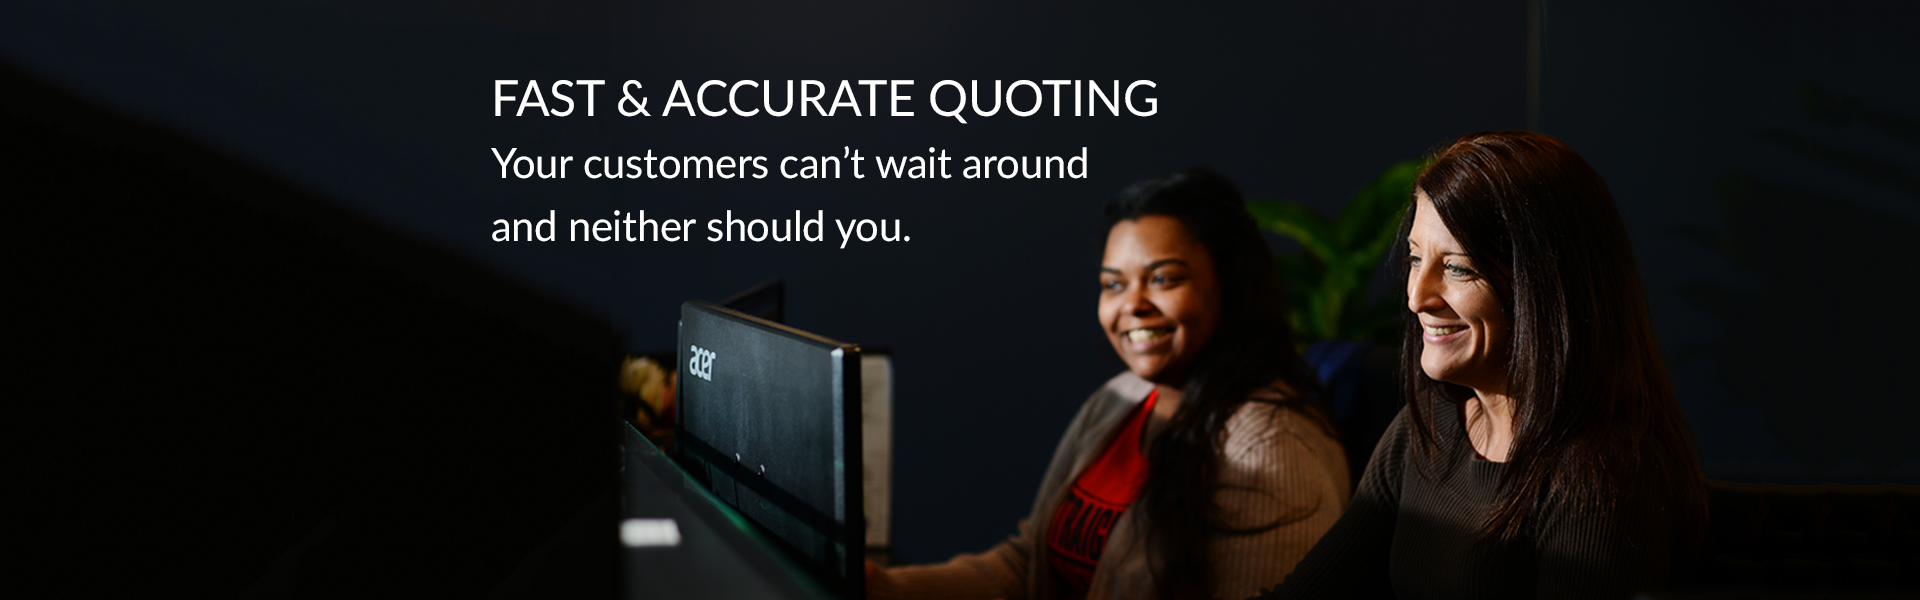 Fast & accurate quoting. Your customers can't wait around and neither should you.